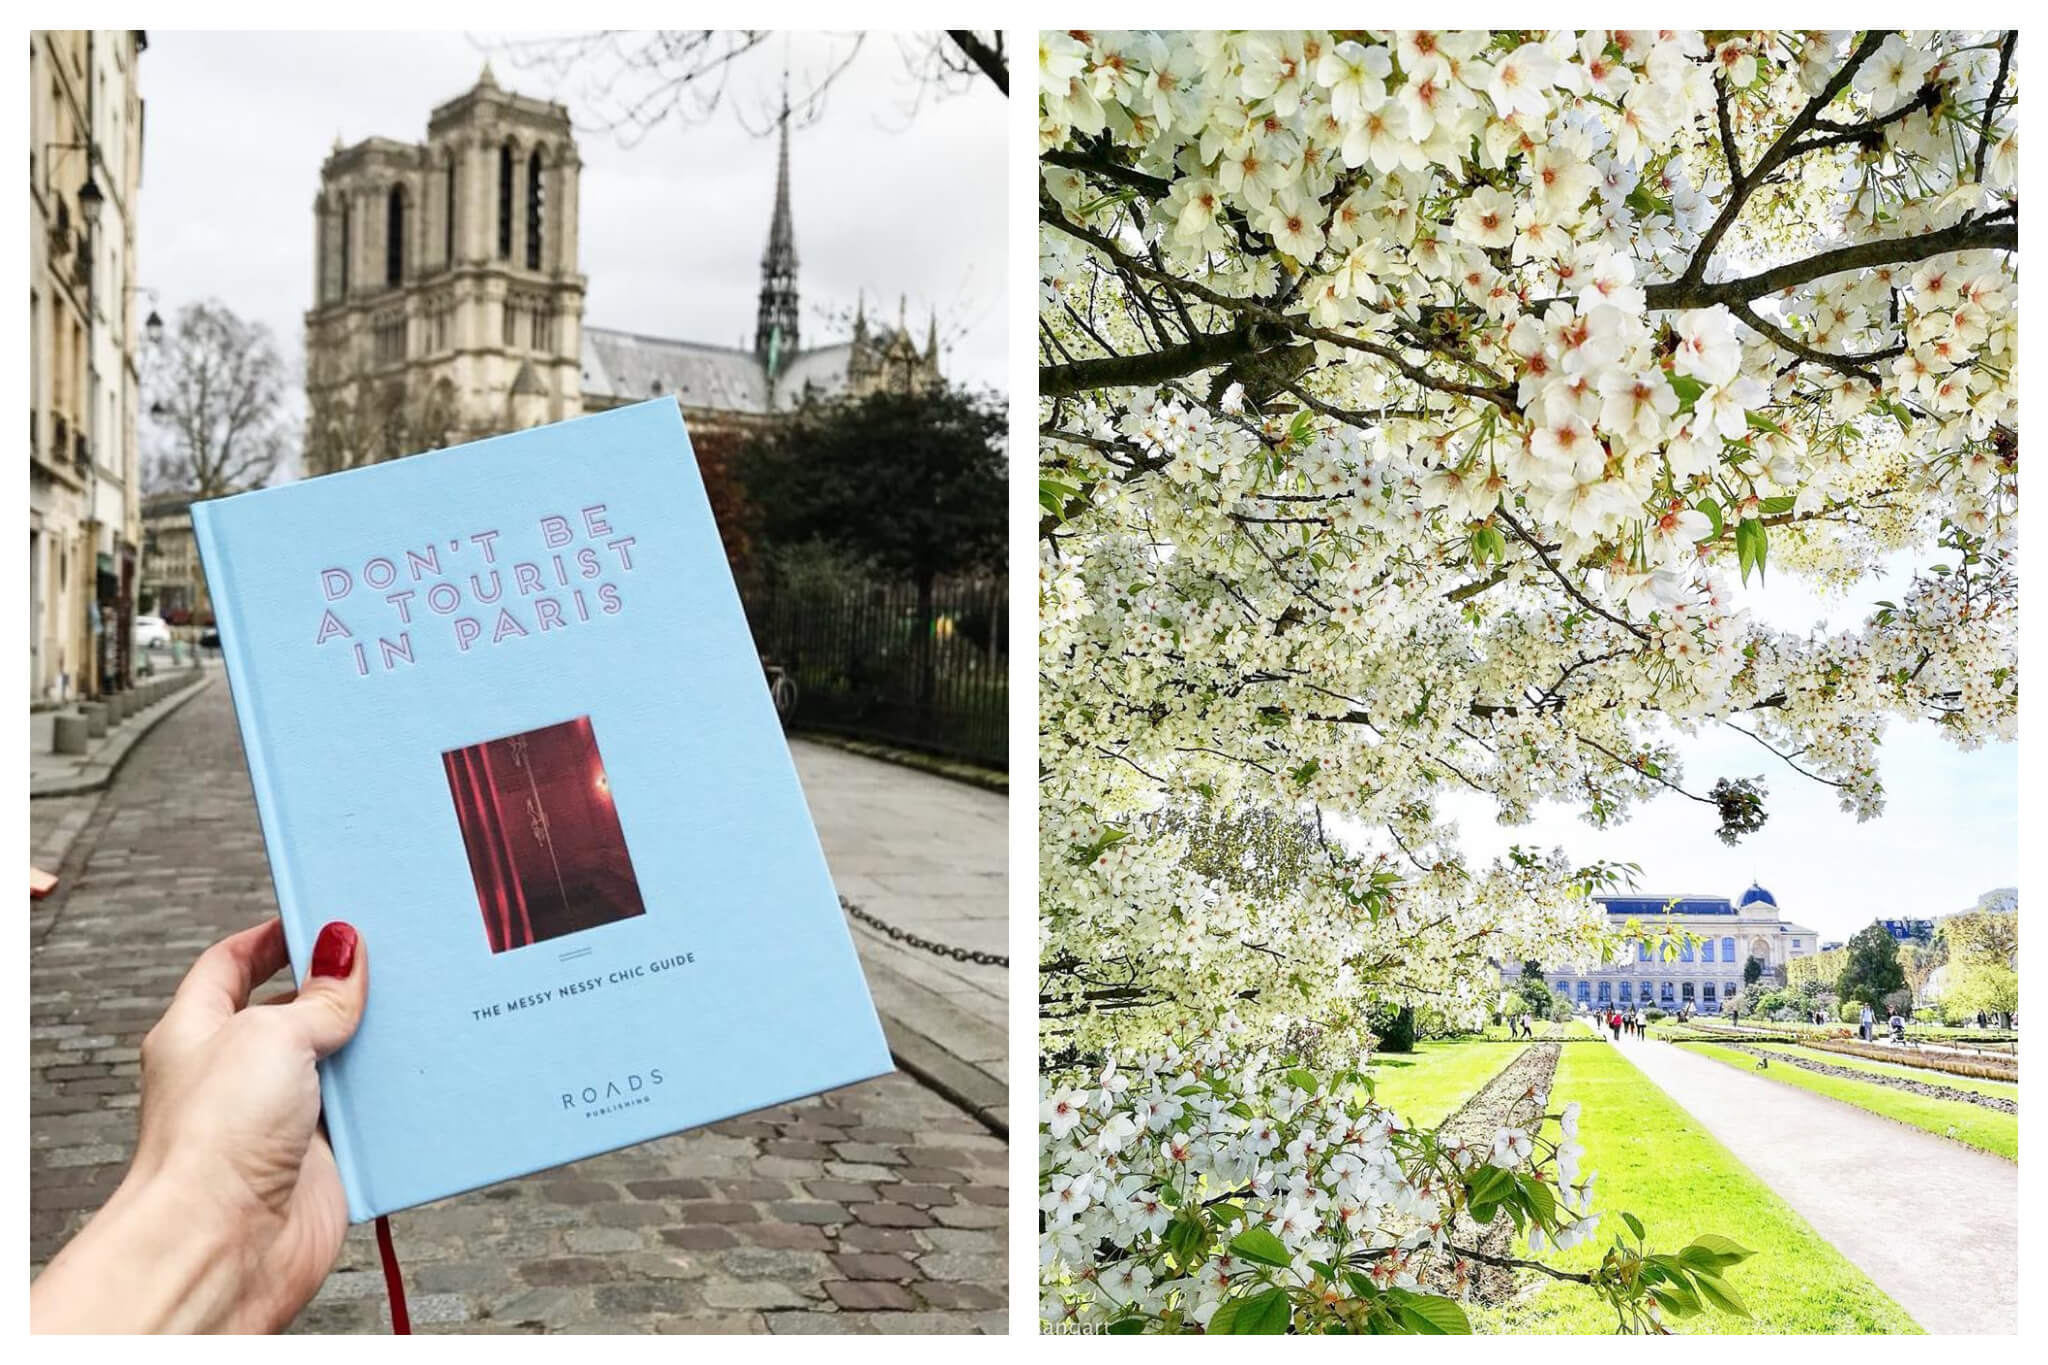 """Left: Vanessa Grall, aka Messy Nessy, holds a copy of her book """"Don't Be a Tourist in Paris"""" book in front of the Notre-Dame, Right: Bright white flowers flowers bloom on a sunny day in the Jardin de Plantes in Paris"""